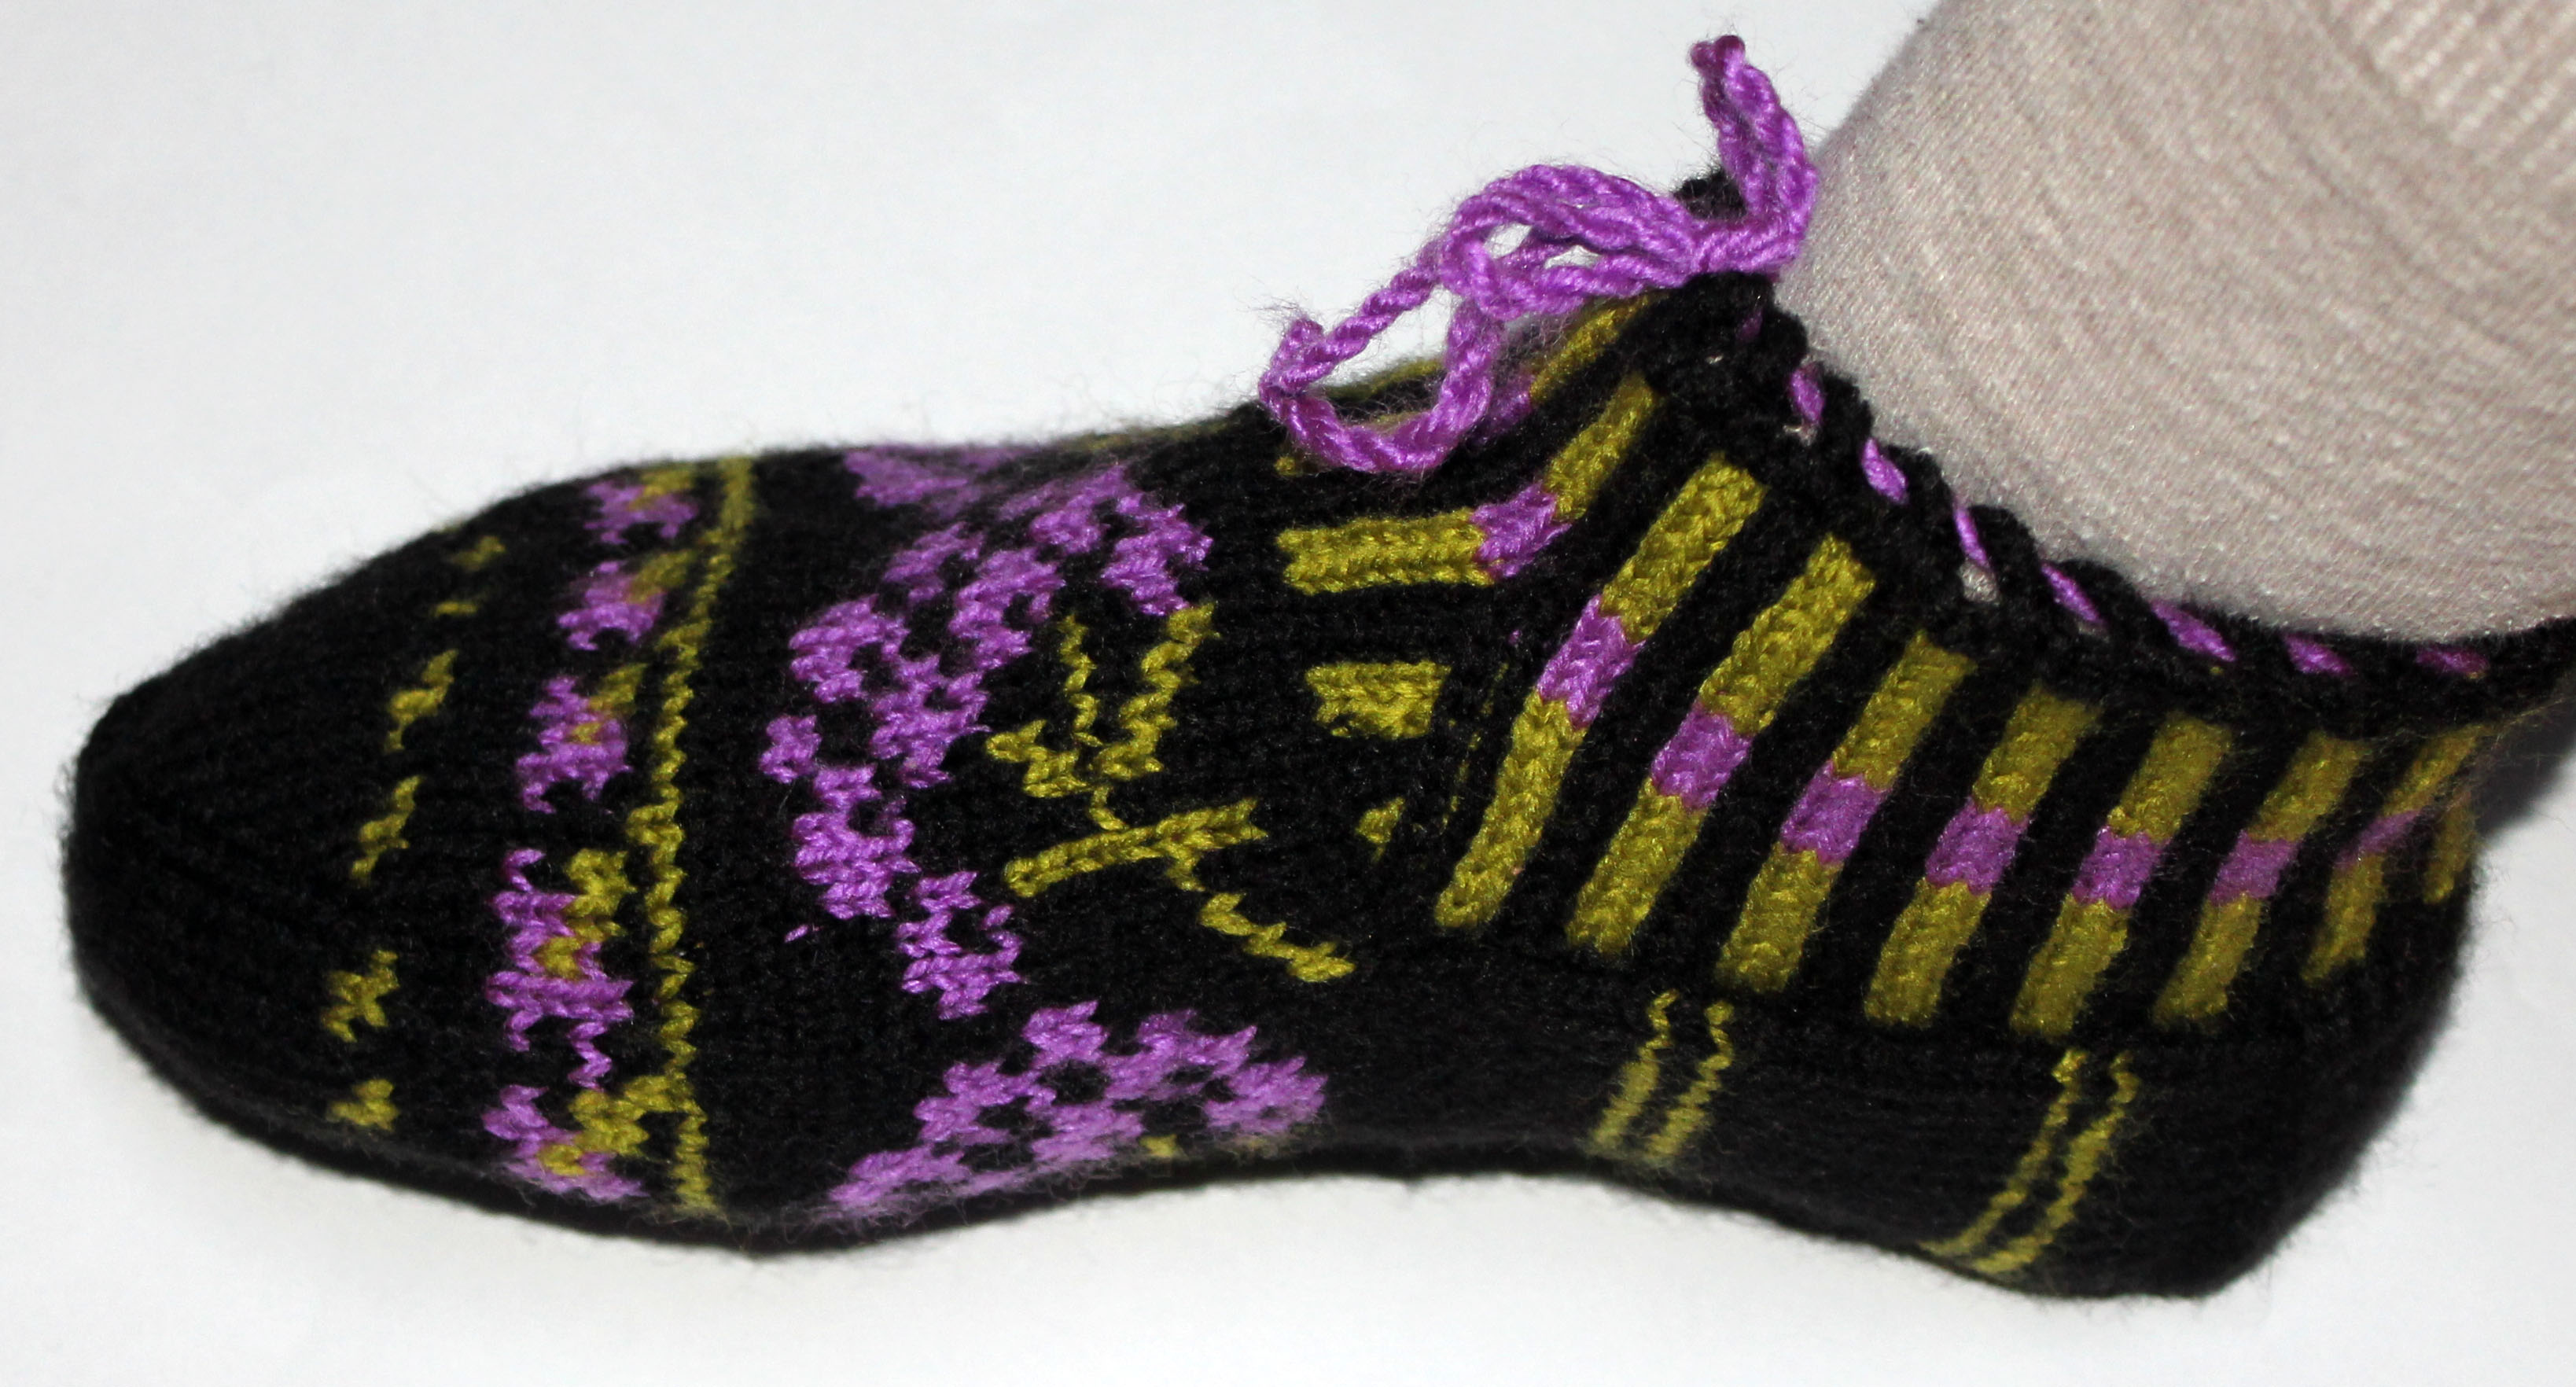 Knitting Pattern For Turkish Slippers : Authentic Traditional Hand Knitted Slippers, Turkish Socks, Home Shoes, Booti...